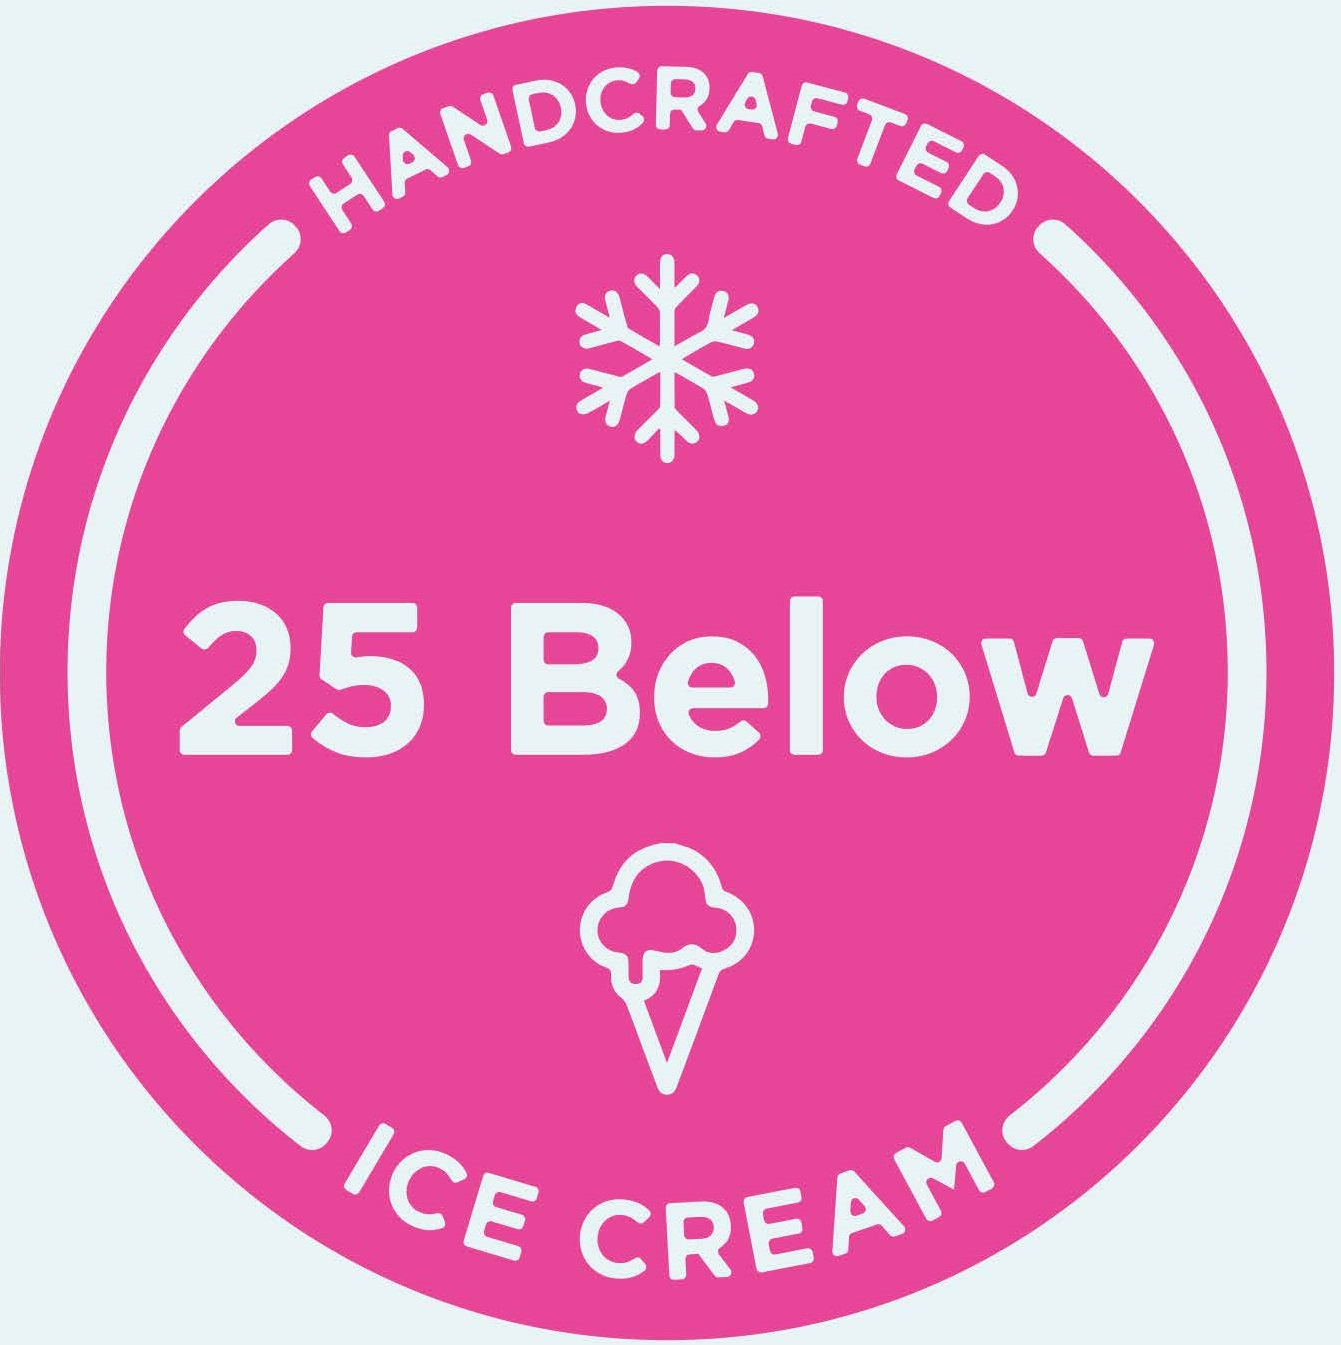 25 Below Hand-Crafted Ice Cream